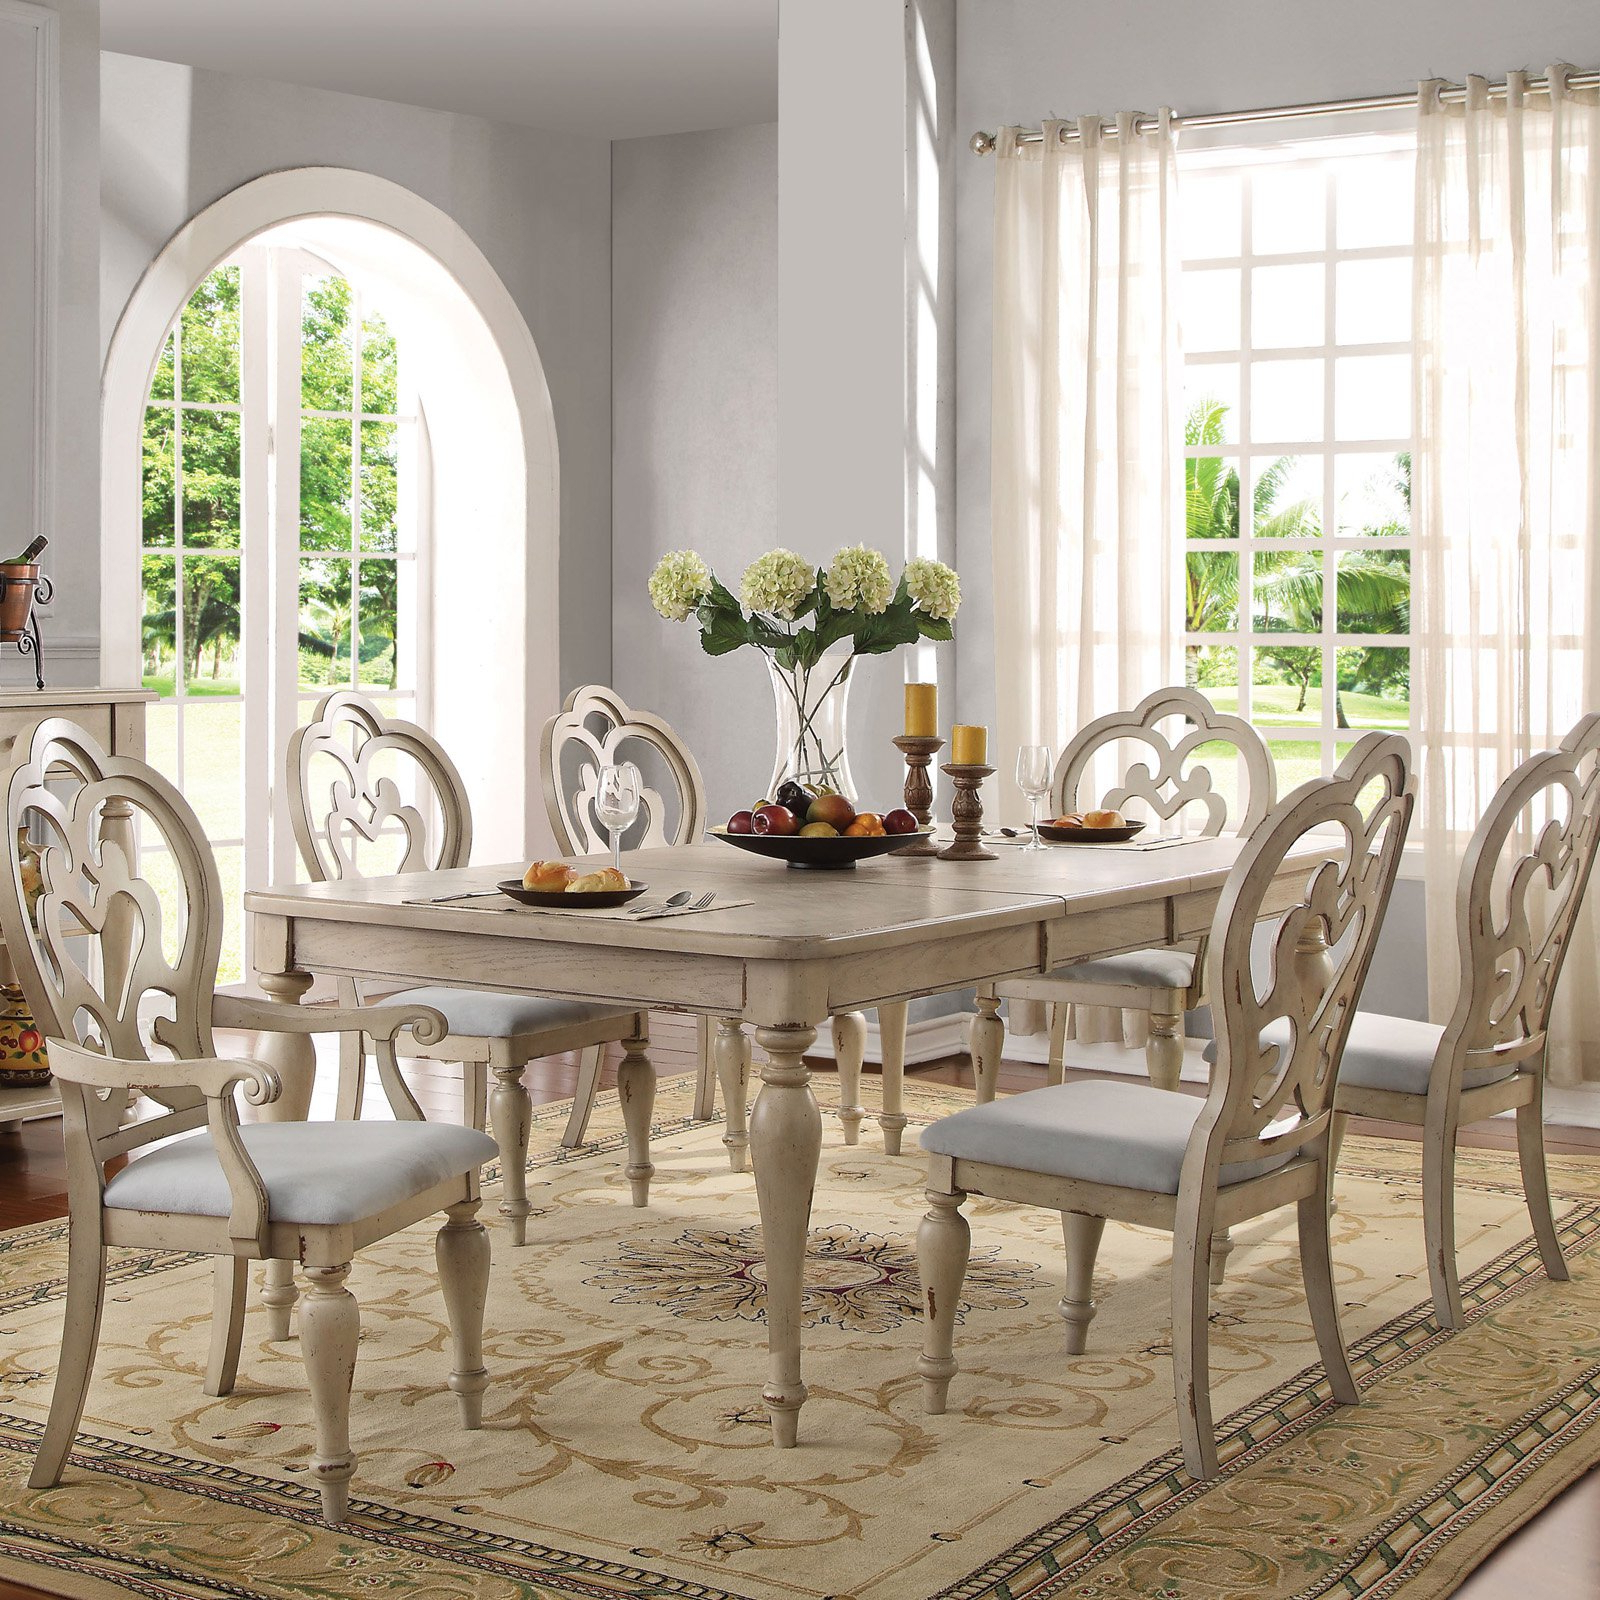 Chelmsford 3 Piece Dining Sets Intended For Preferred Acme Furniture Abelin Dining Table In  (View 3 of 25)